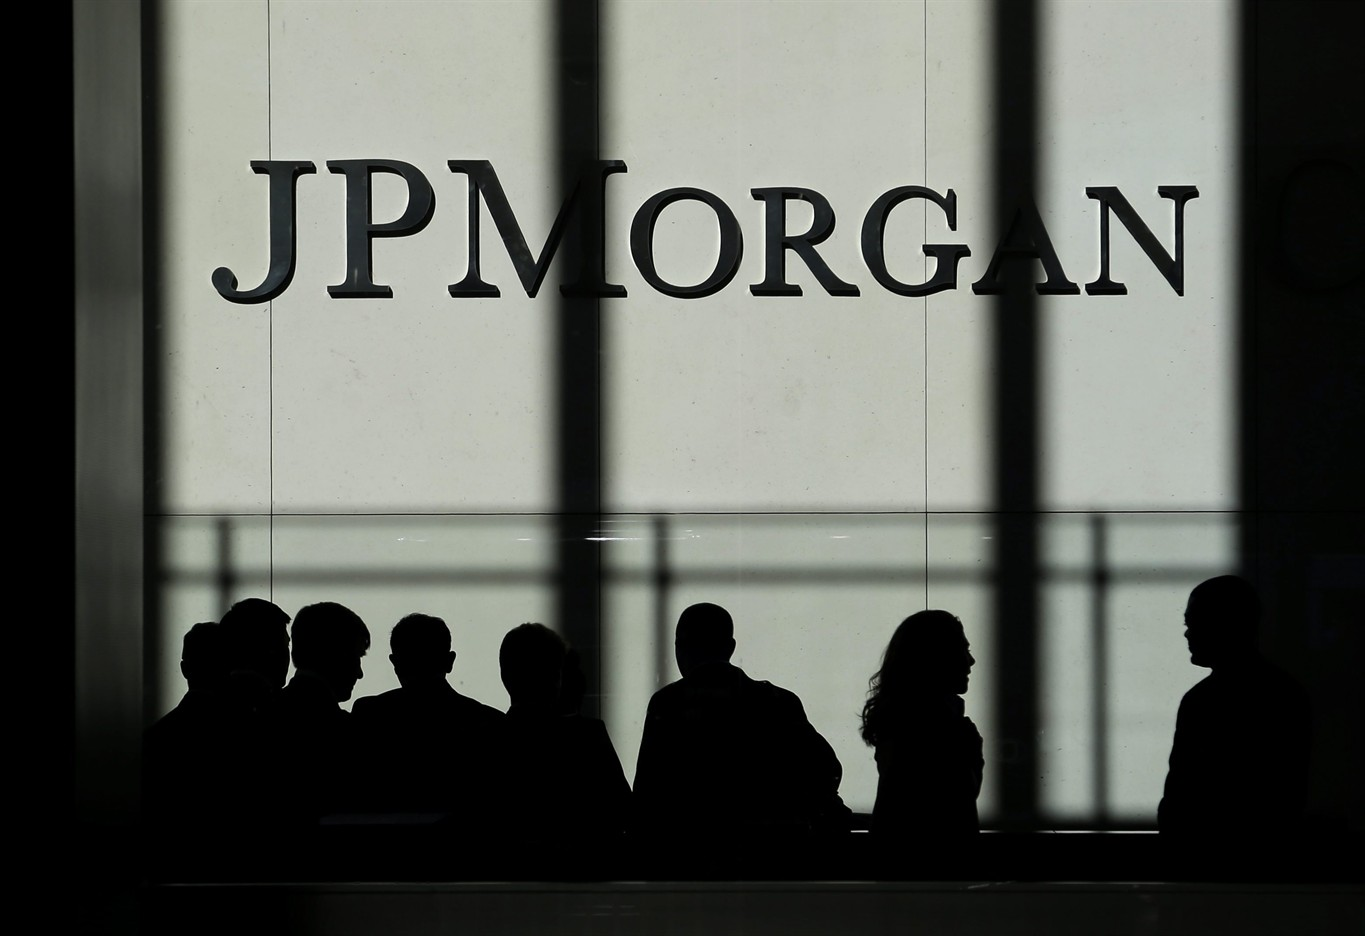 Inc. Has $611000 Holdings in JPMorgan Chase & Co. (JPM)